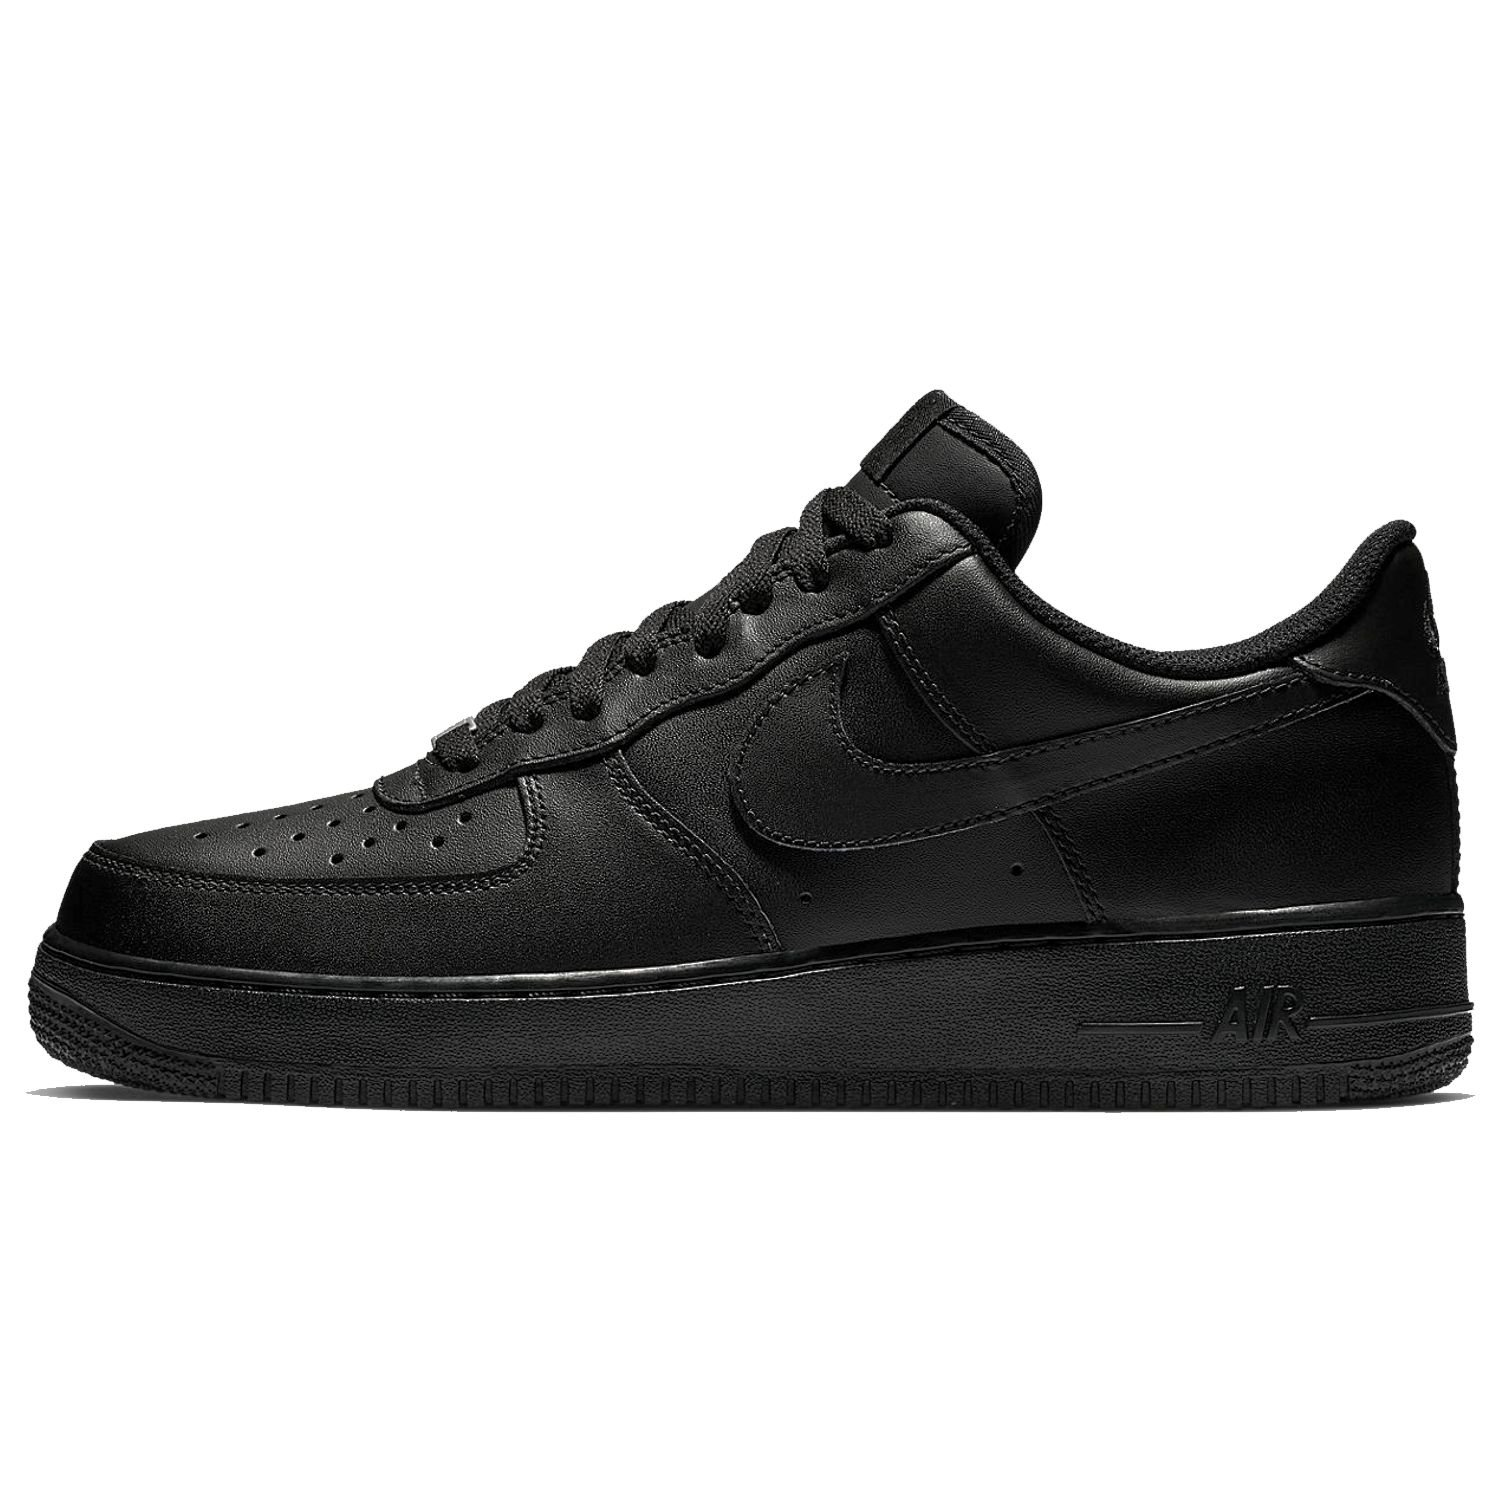 Buty męskie Nike Air Force 1 '07 All Black 315122 001